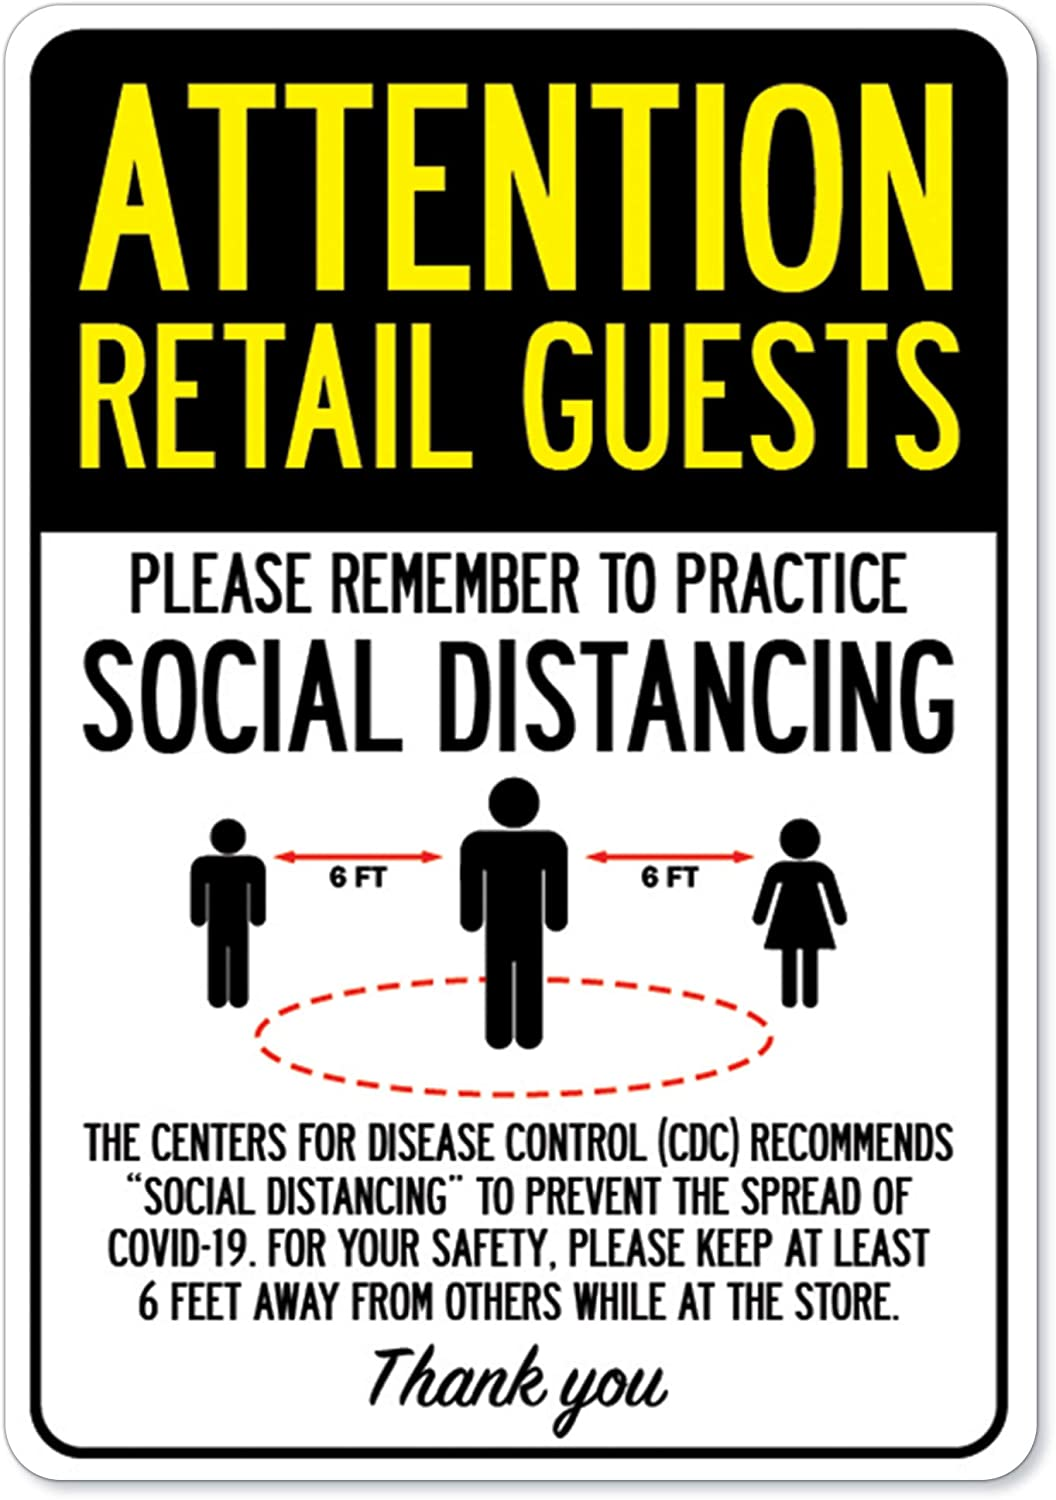 Vinyl Decal Municipality Home /& Colleagues Public Safety Sign Attention Retail Guests Practice Social Distancing Made in The USA Protect Your Business